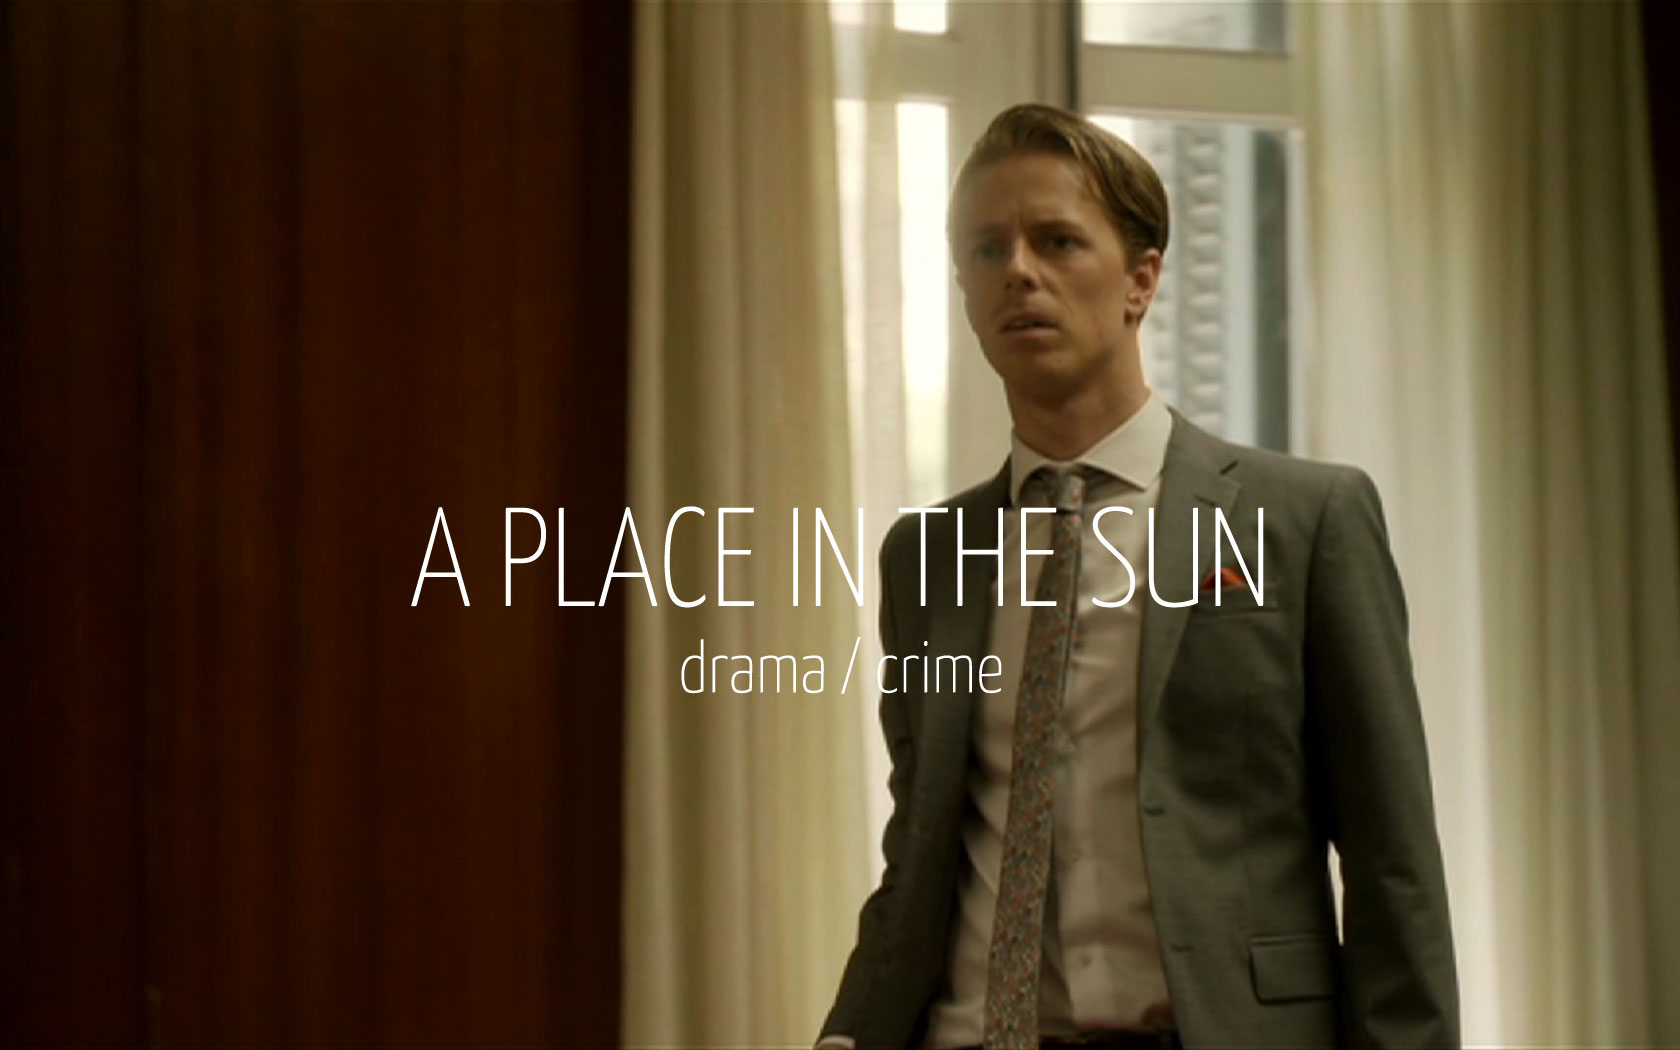 Scandinavian actor Fredrik Wagner as lawer in criminal drama film A place in the sun